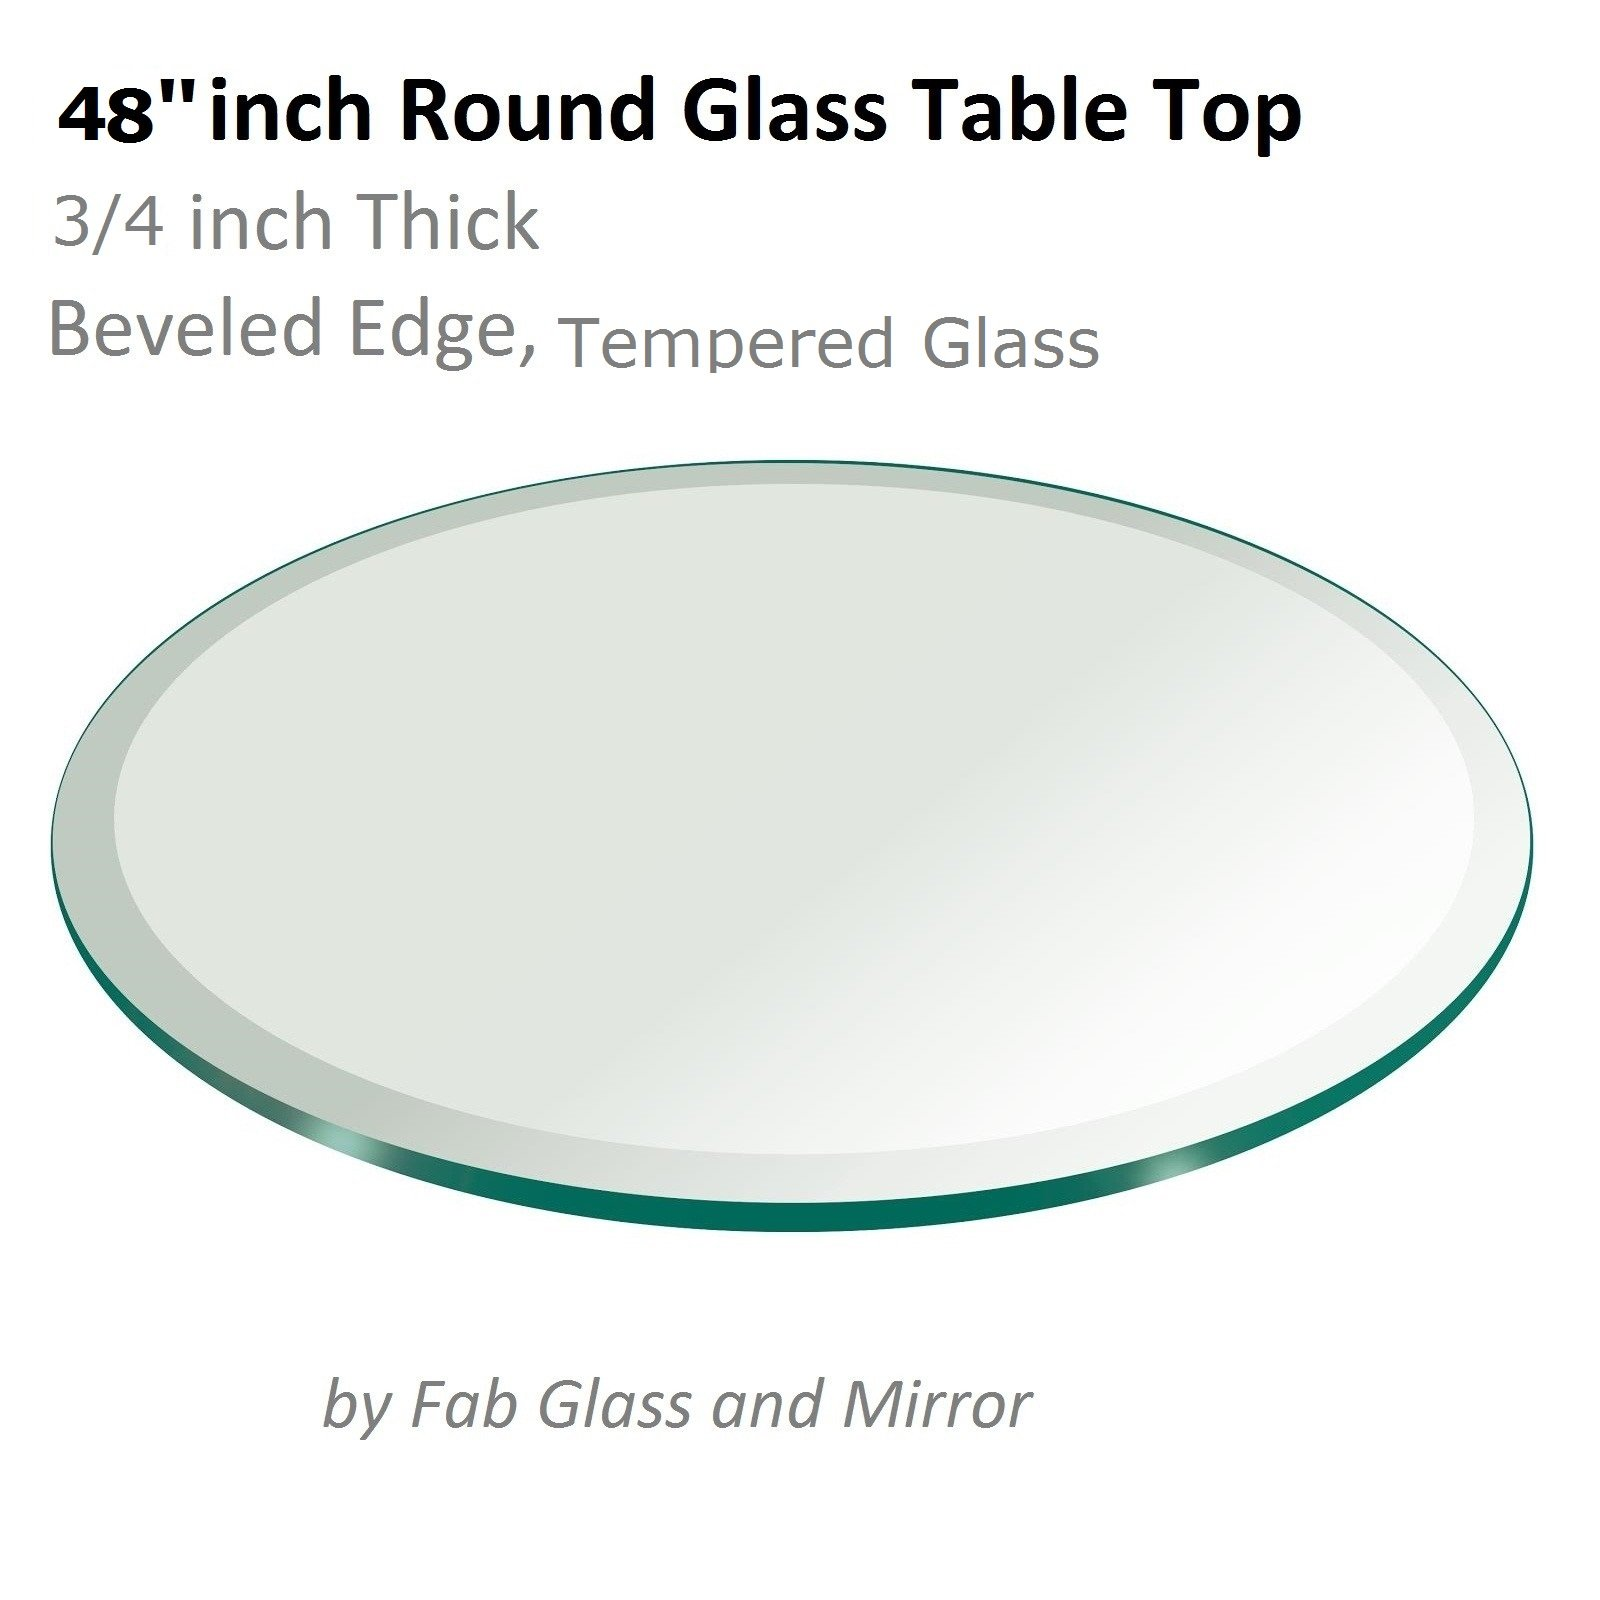 48'' Inch Round Glass Table Top 3/4'' Thick Tempered Beveled Edge by Fab Glass and Mirror